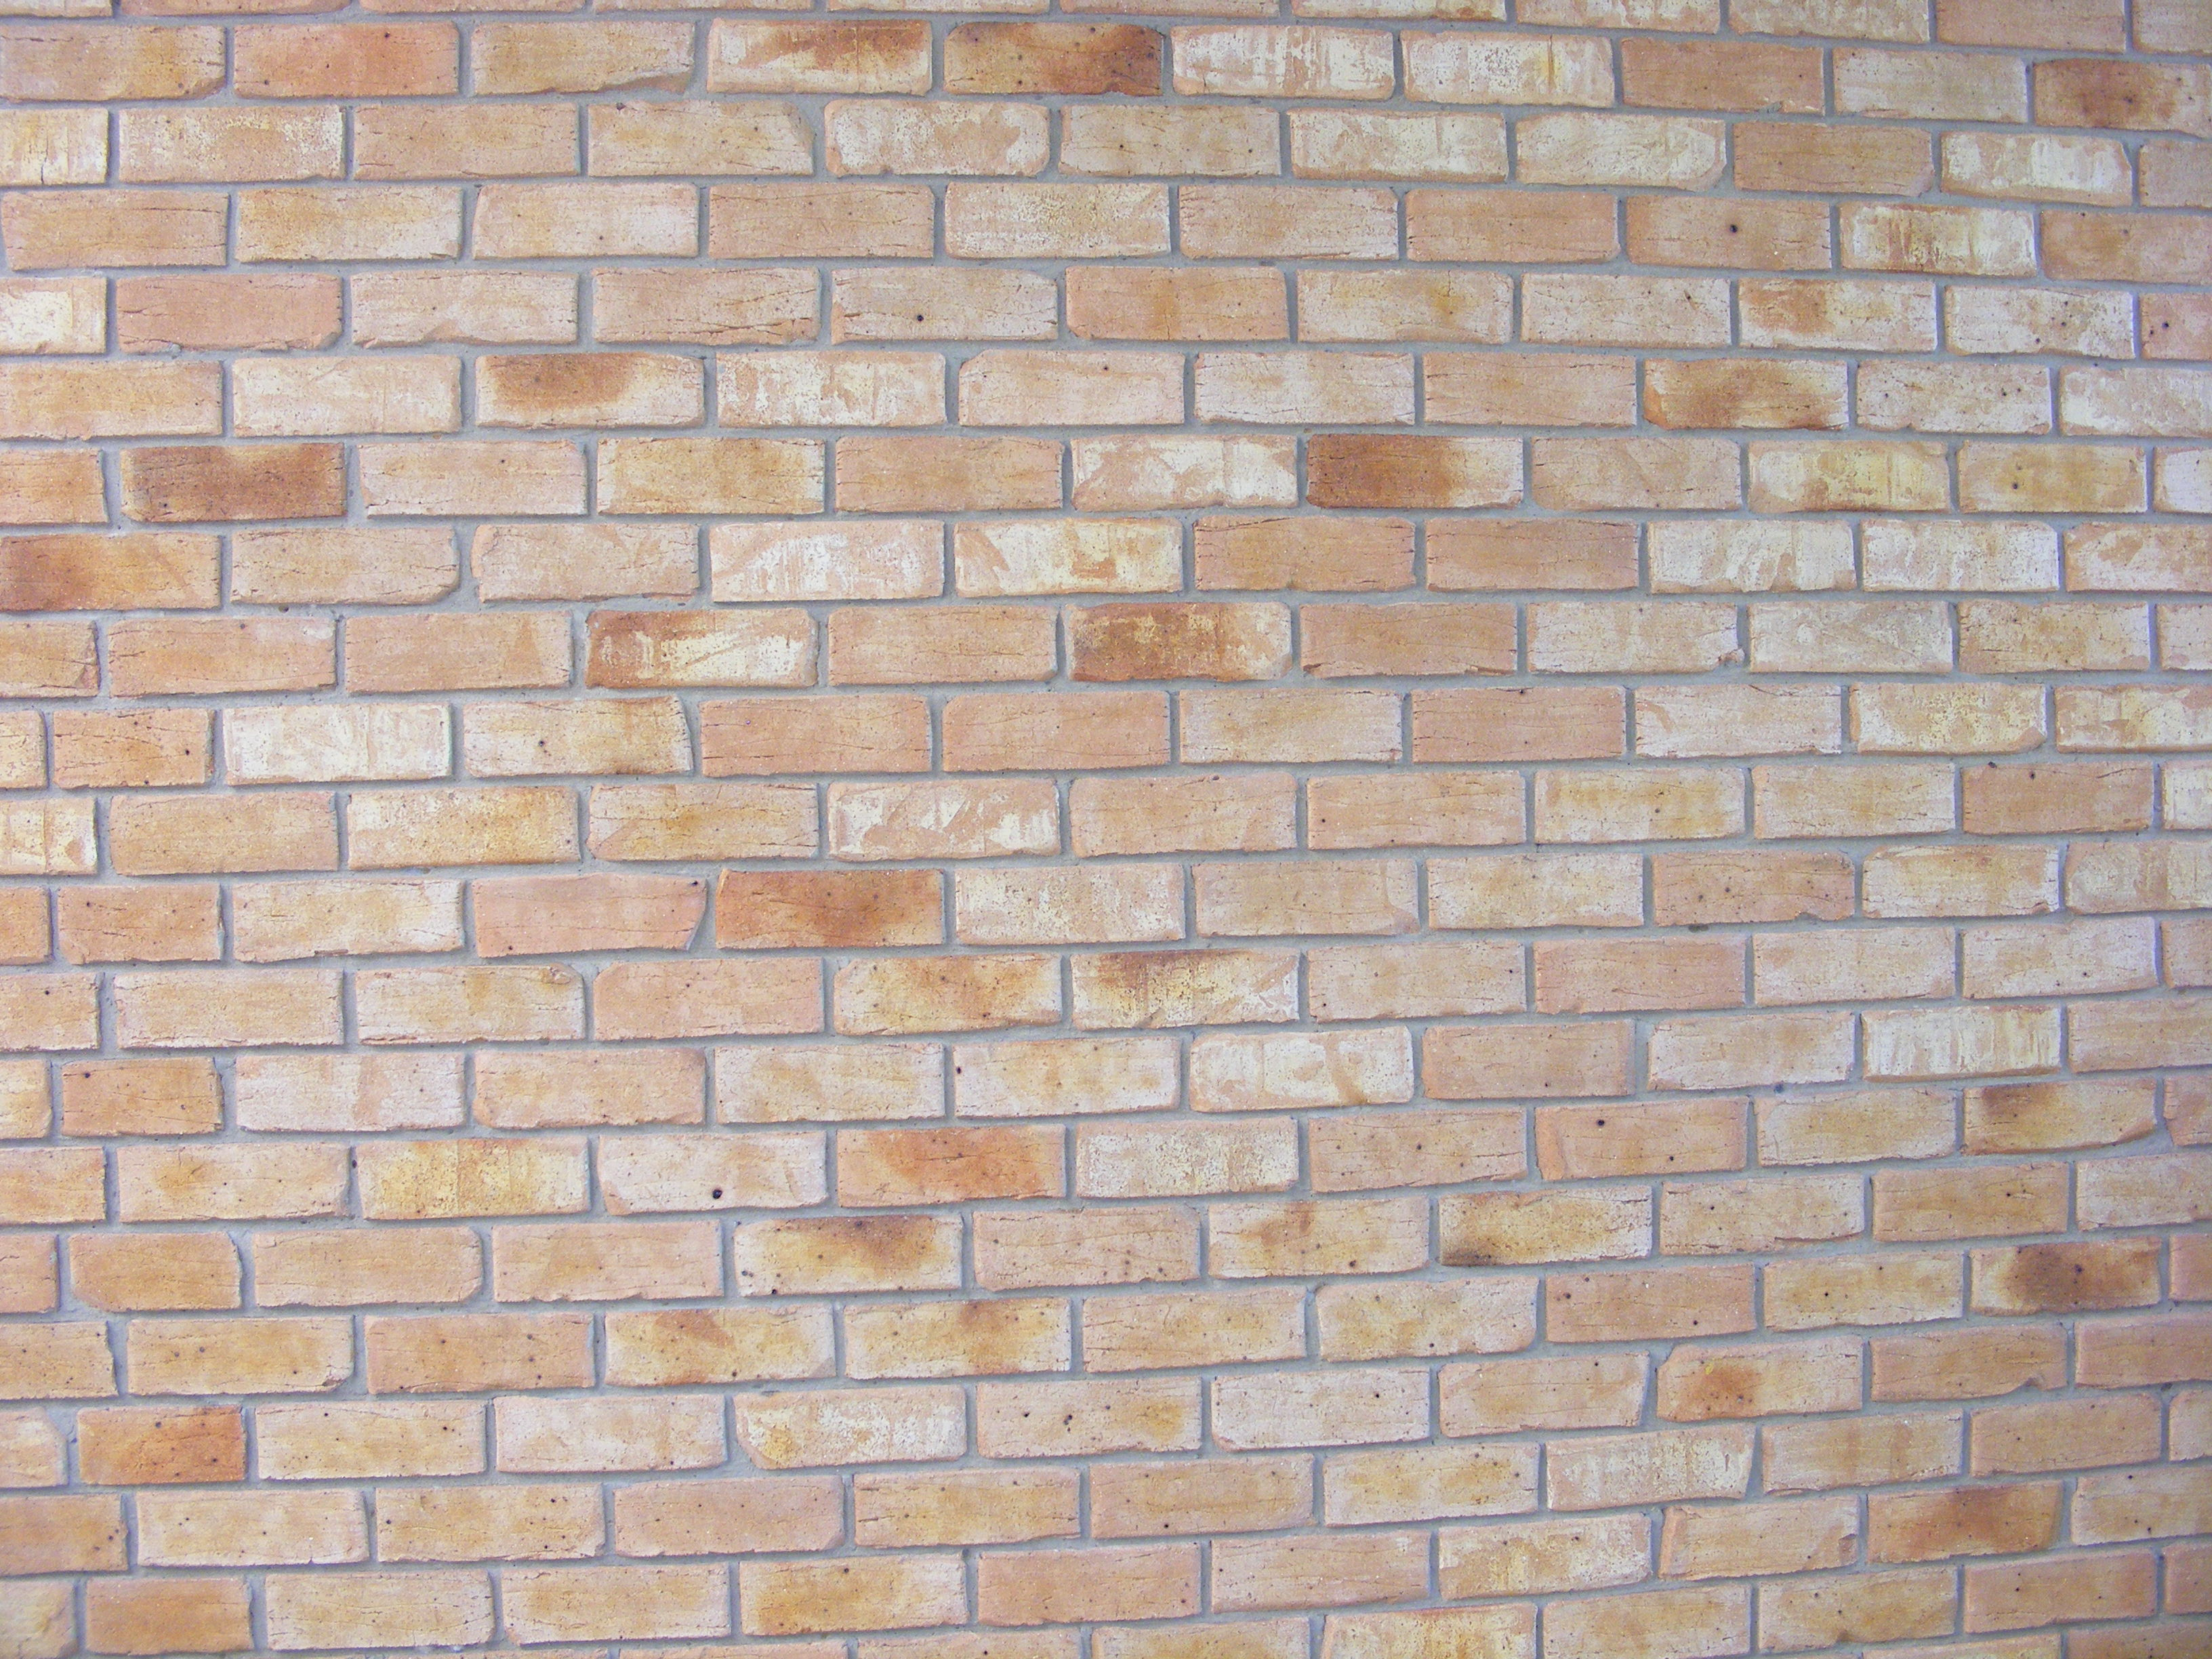 Brick-patterns-wallpaper-wpc9203212